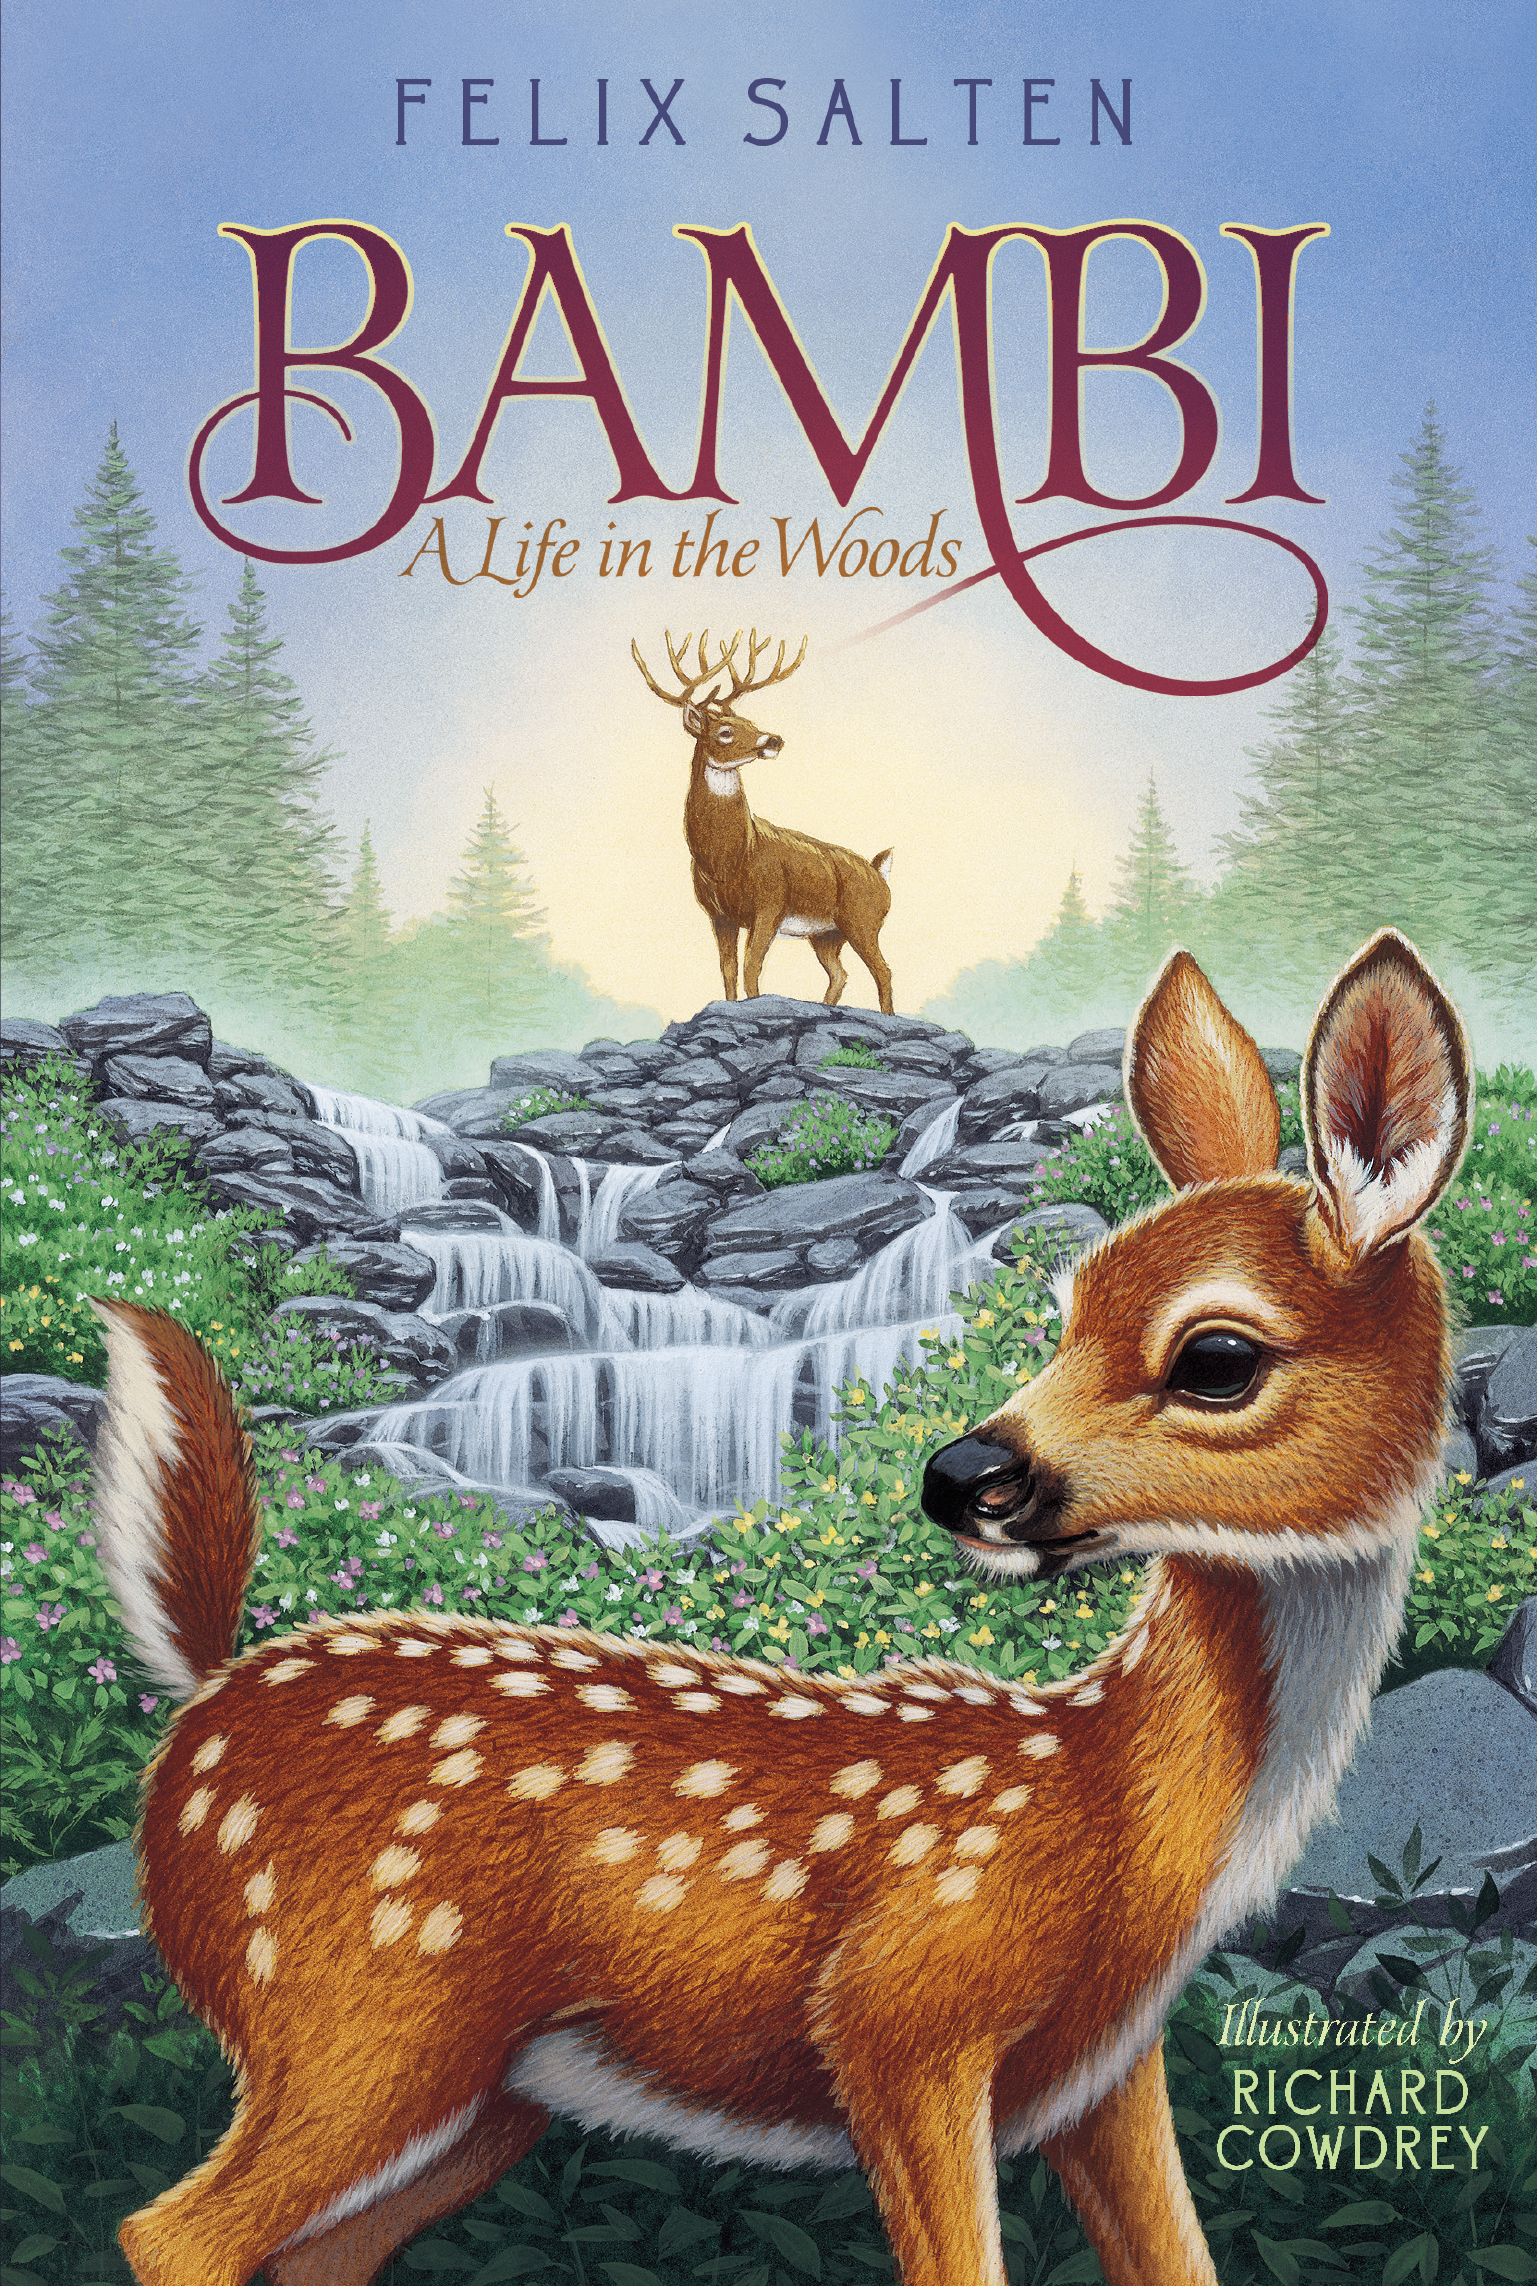 Image result for bambi felix salten book cover